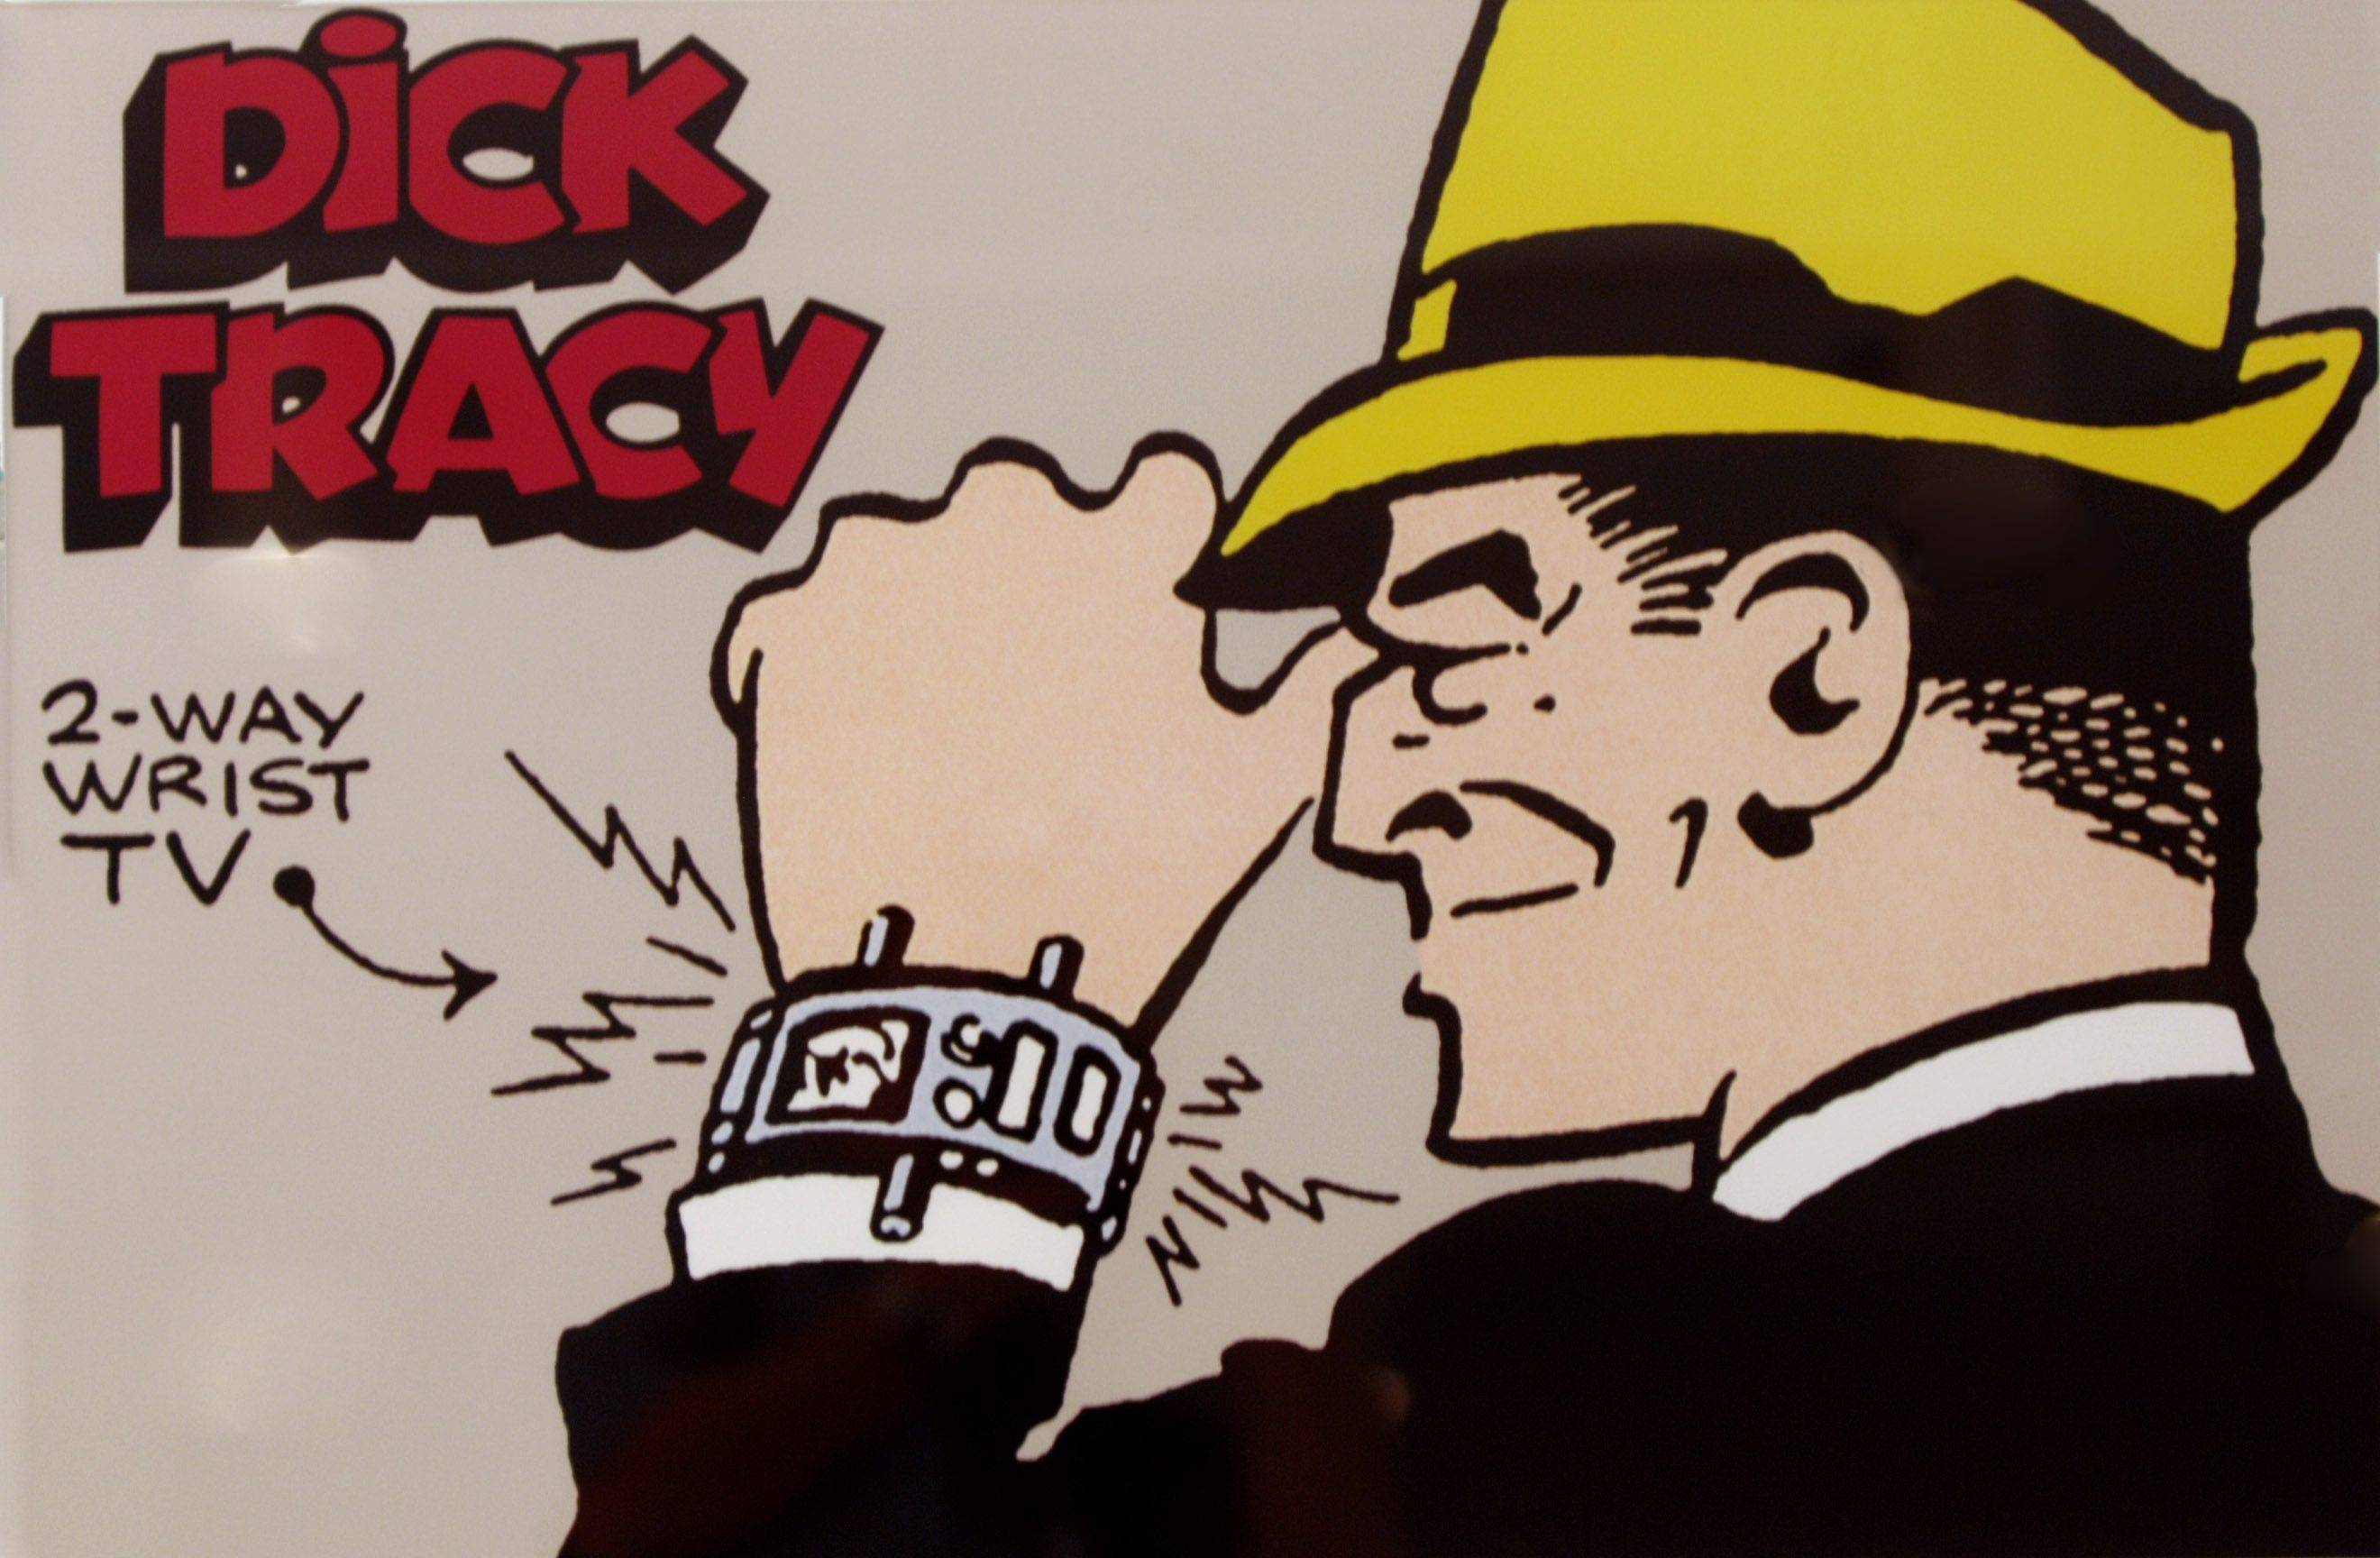 Artwork was on display during the Naper Settlement's celebration the 80th birthday of the cartoon character Dick Tracy. The event included a presentation by Dick Locher, the Naperville man who drew the cartoon strip for many years.